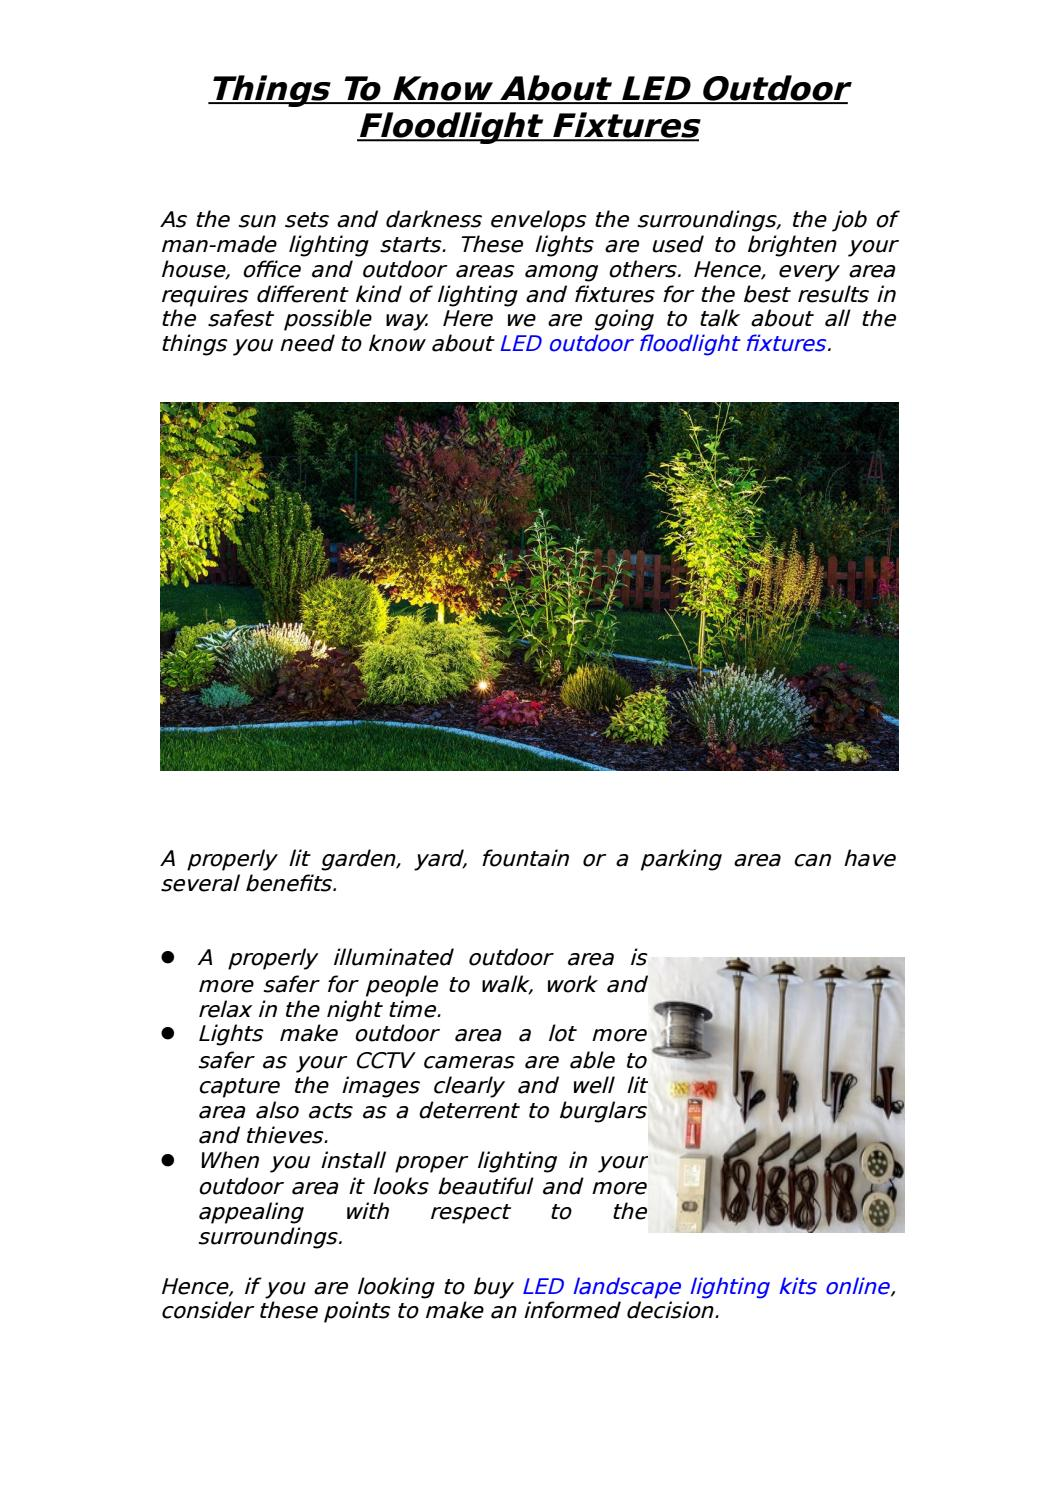 Things To Know About Led Outdoor Floodlight Fixtures By Markdives9987 Issuu